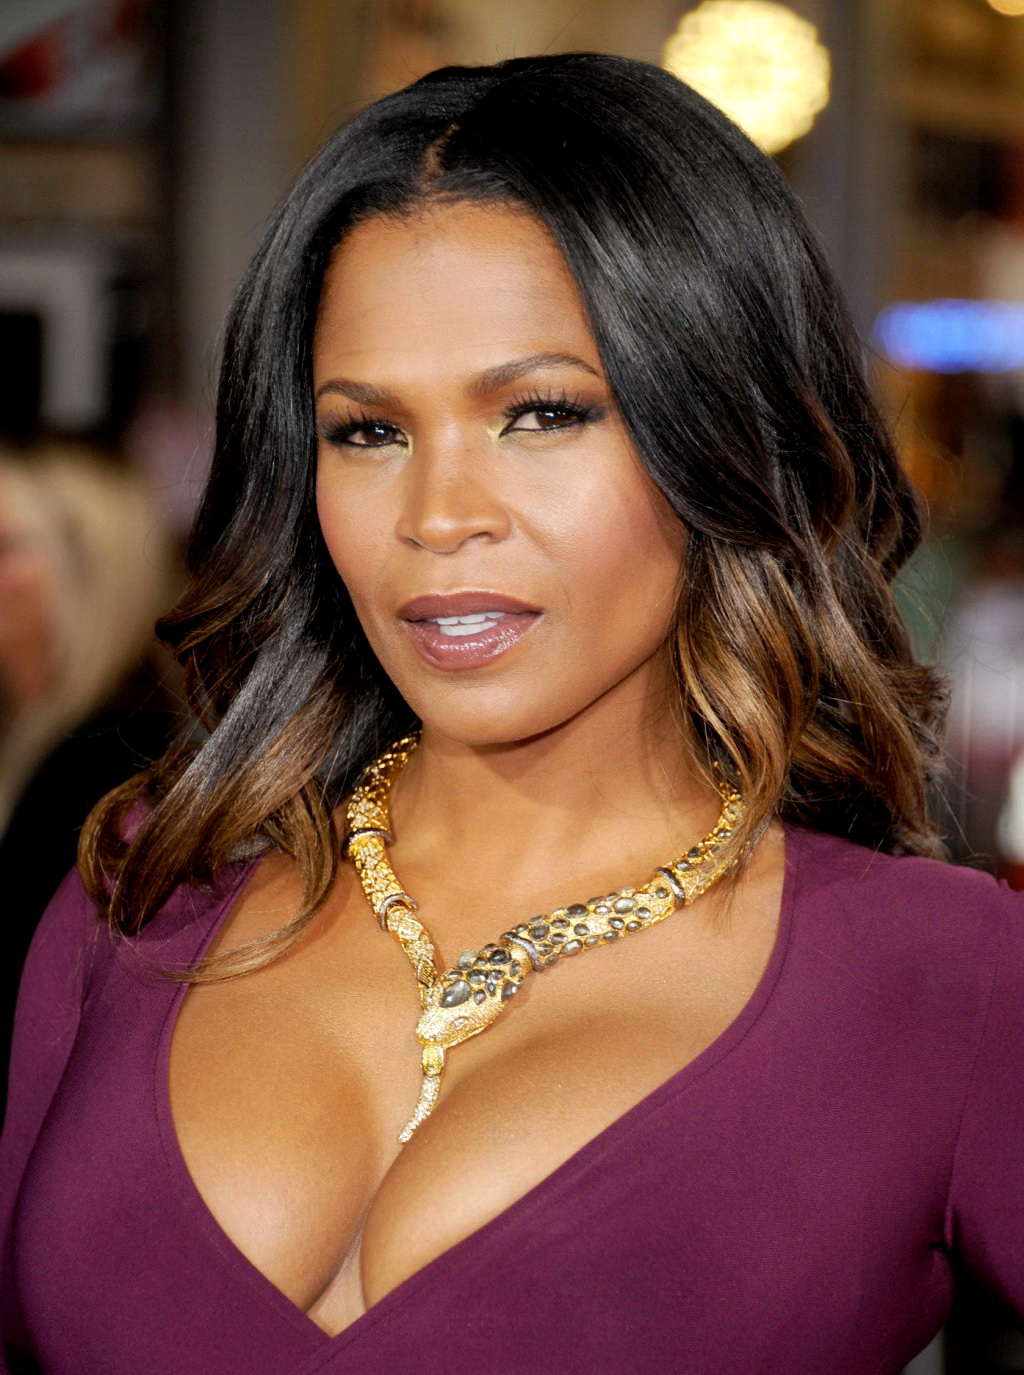 Remarkable, nia long cleavage